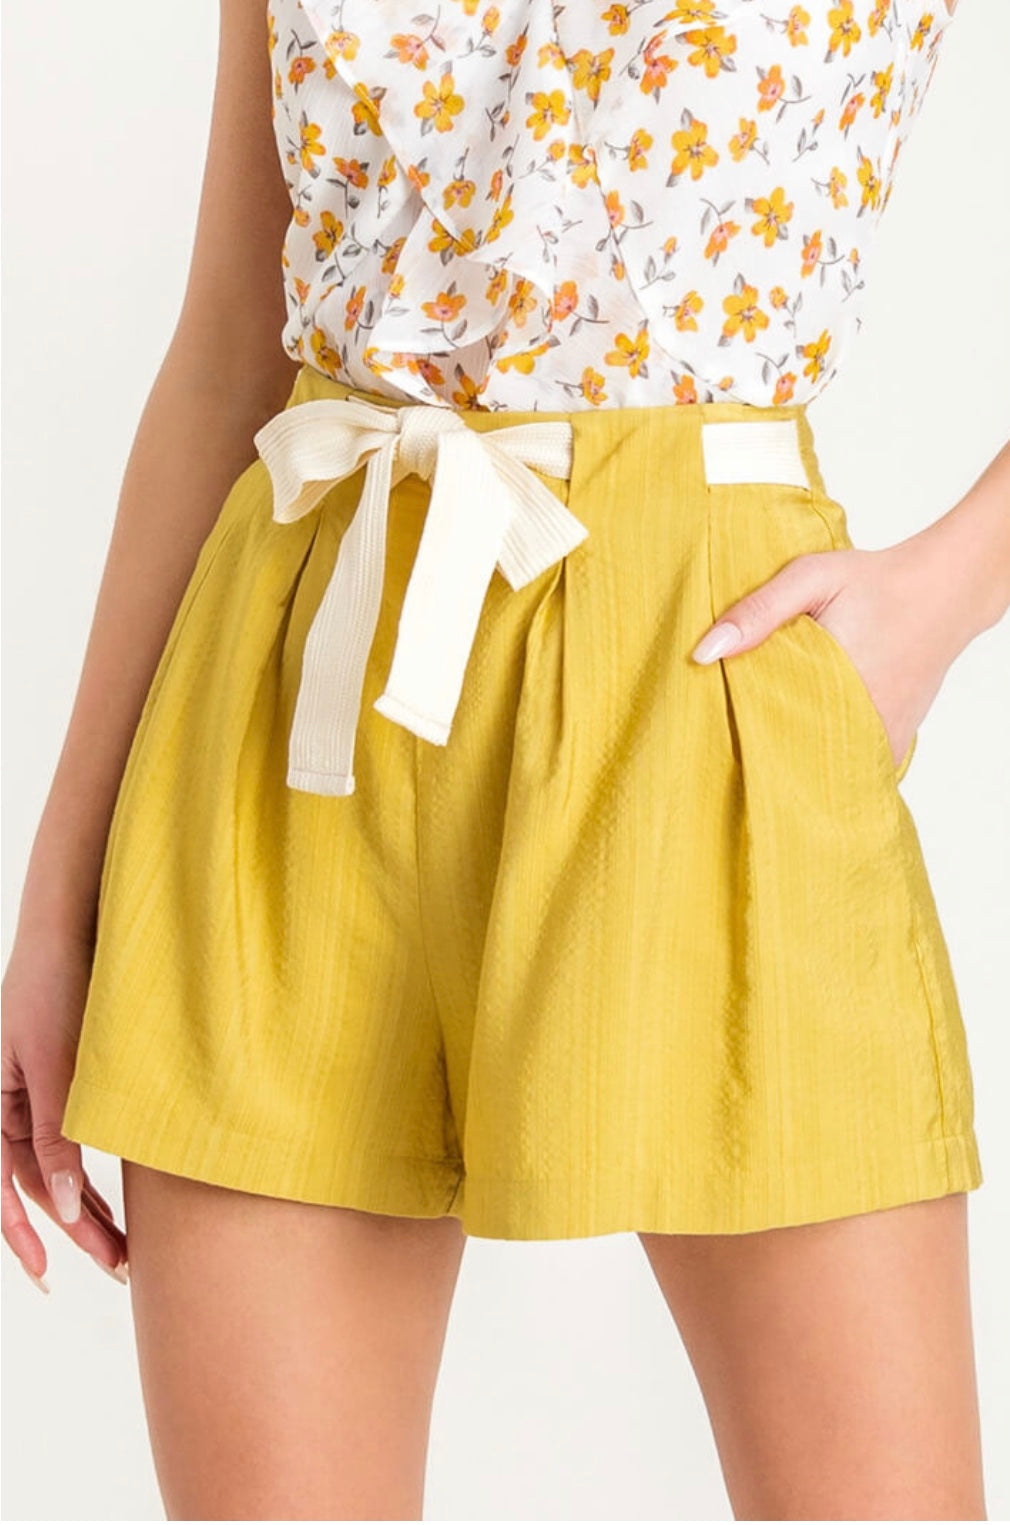 SHORTS WITH TIE IN THE FRONT